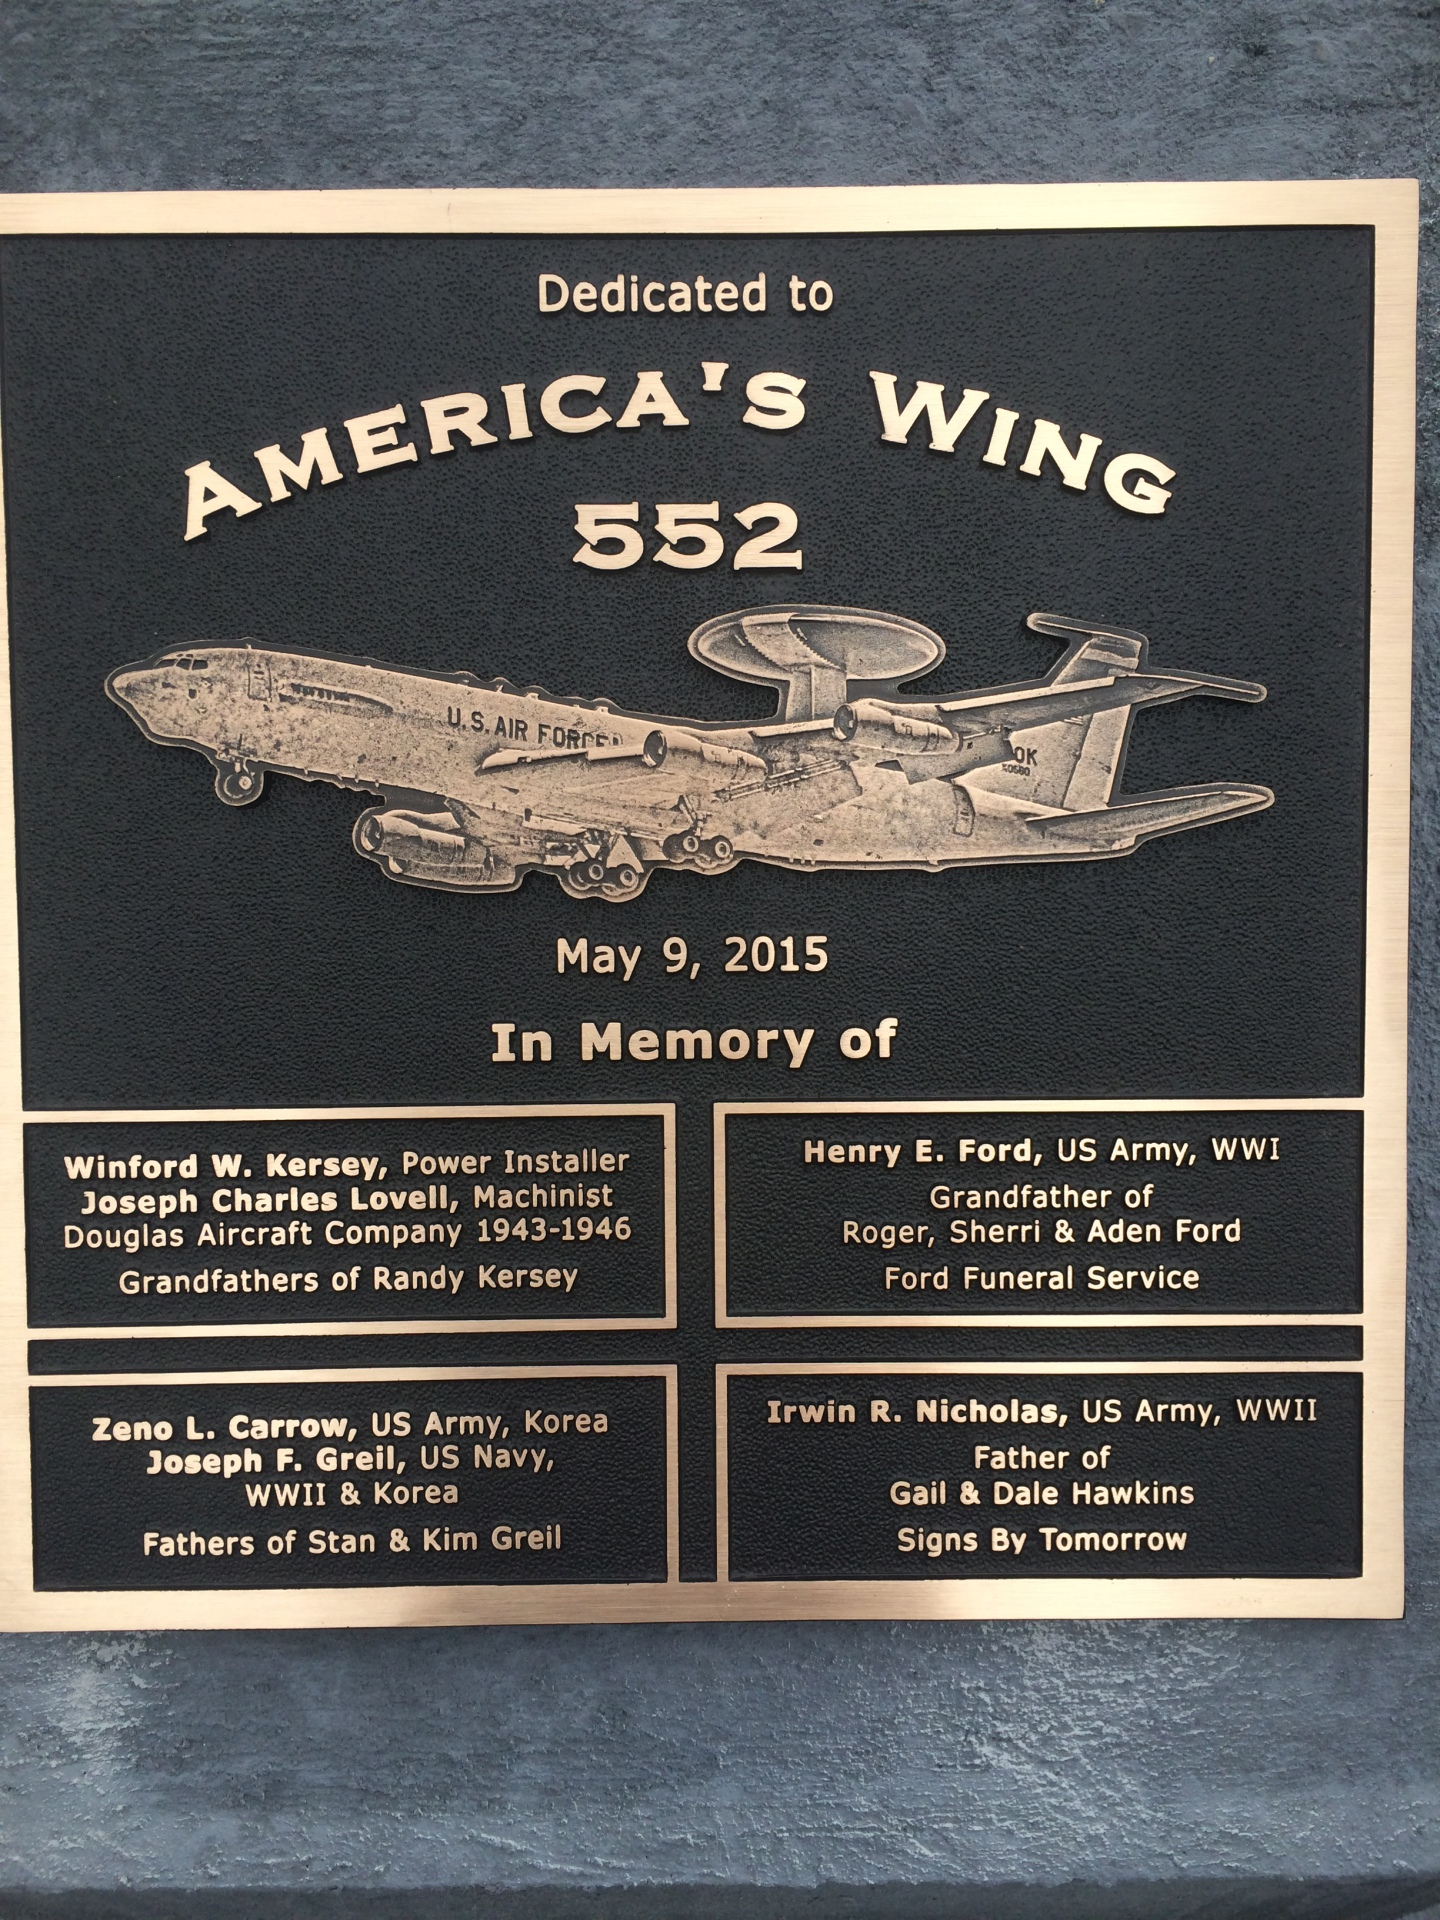 Plaque on plane outside of Tinker